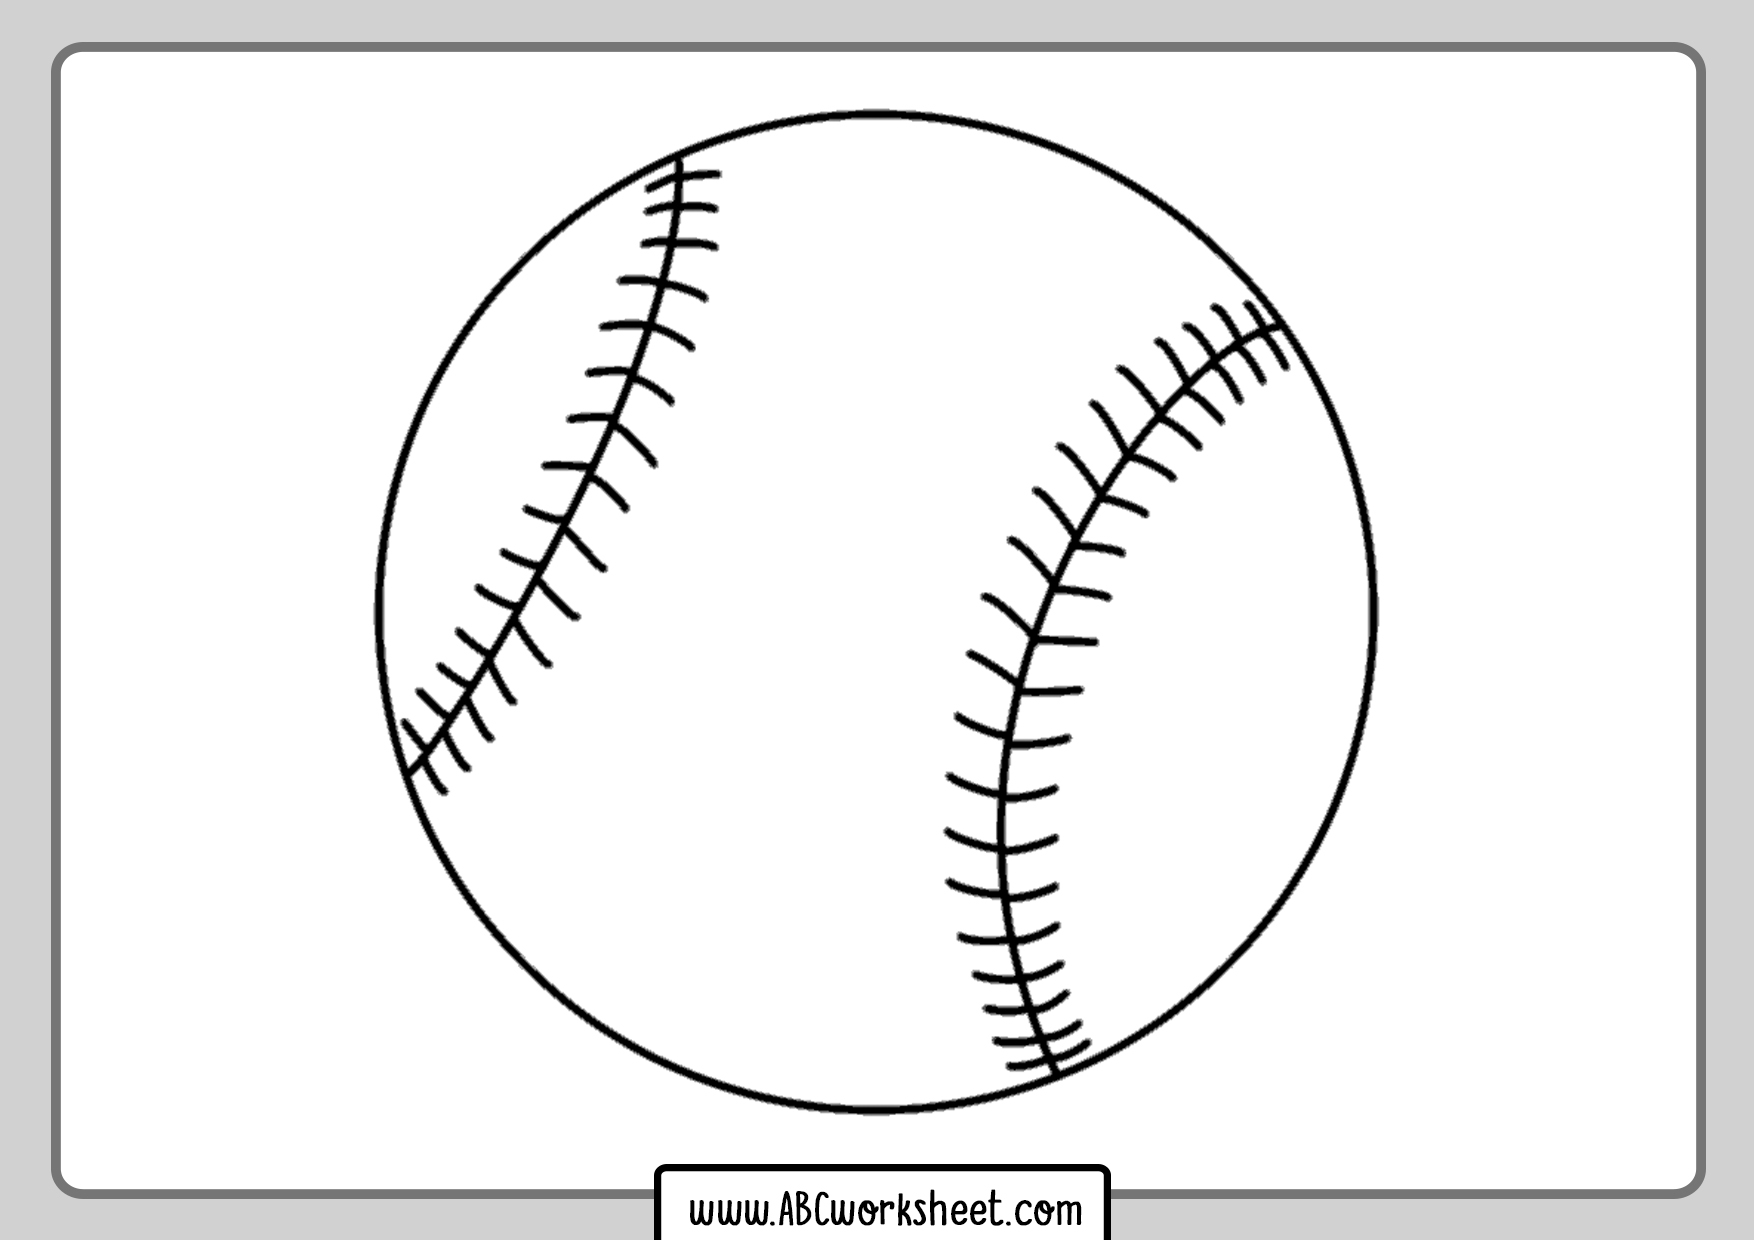 Baseball Ball For Coloring